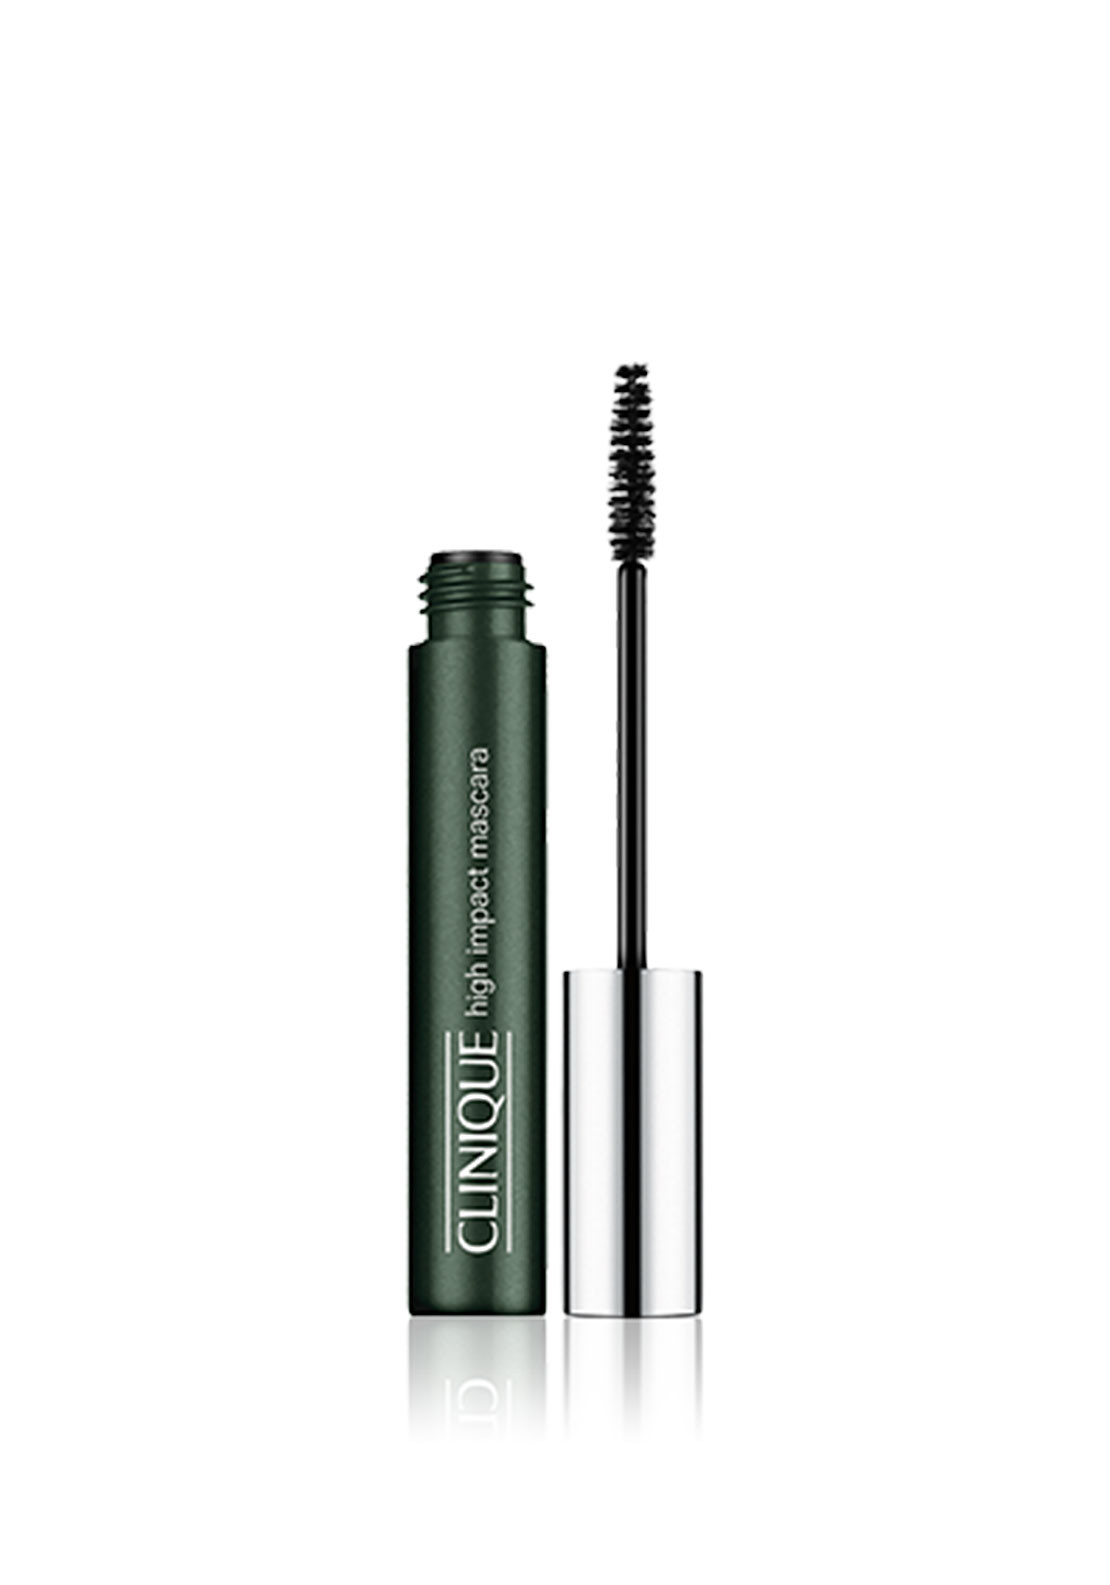 Clinique High Impact Mascara, 01 Black